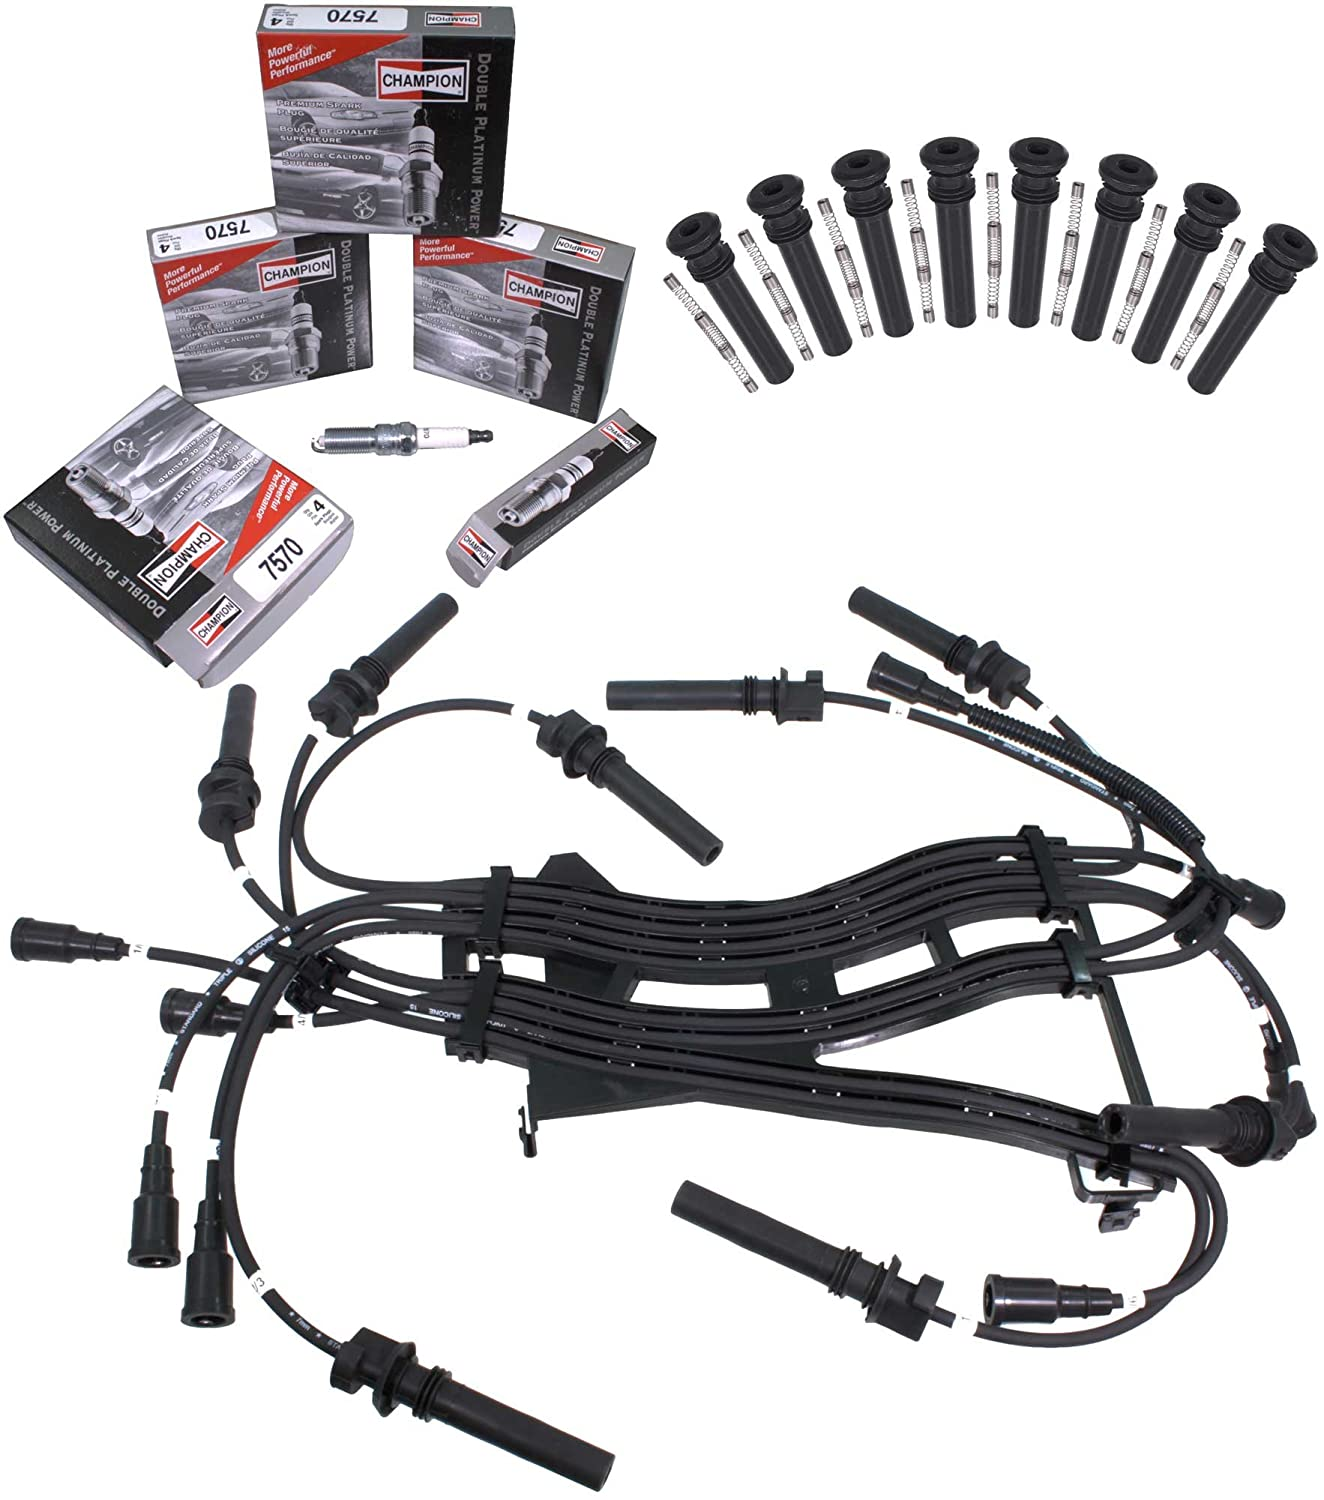 Apdty Tune Up Kit Includes 16 Oem Spark Plugs Basic Ignition Wiring Diagram 300 Internation Wires Cop Coil On Plug Boots Fits 2003 2005 Dodge Ram Pickups With 57l Hemi